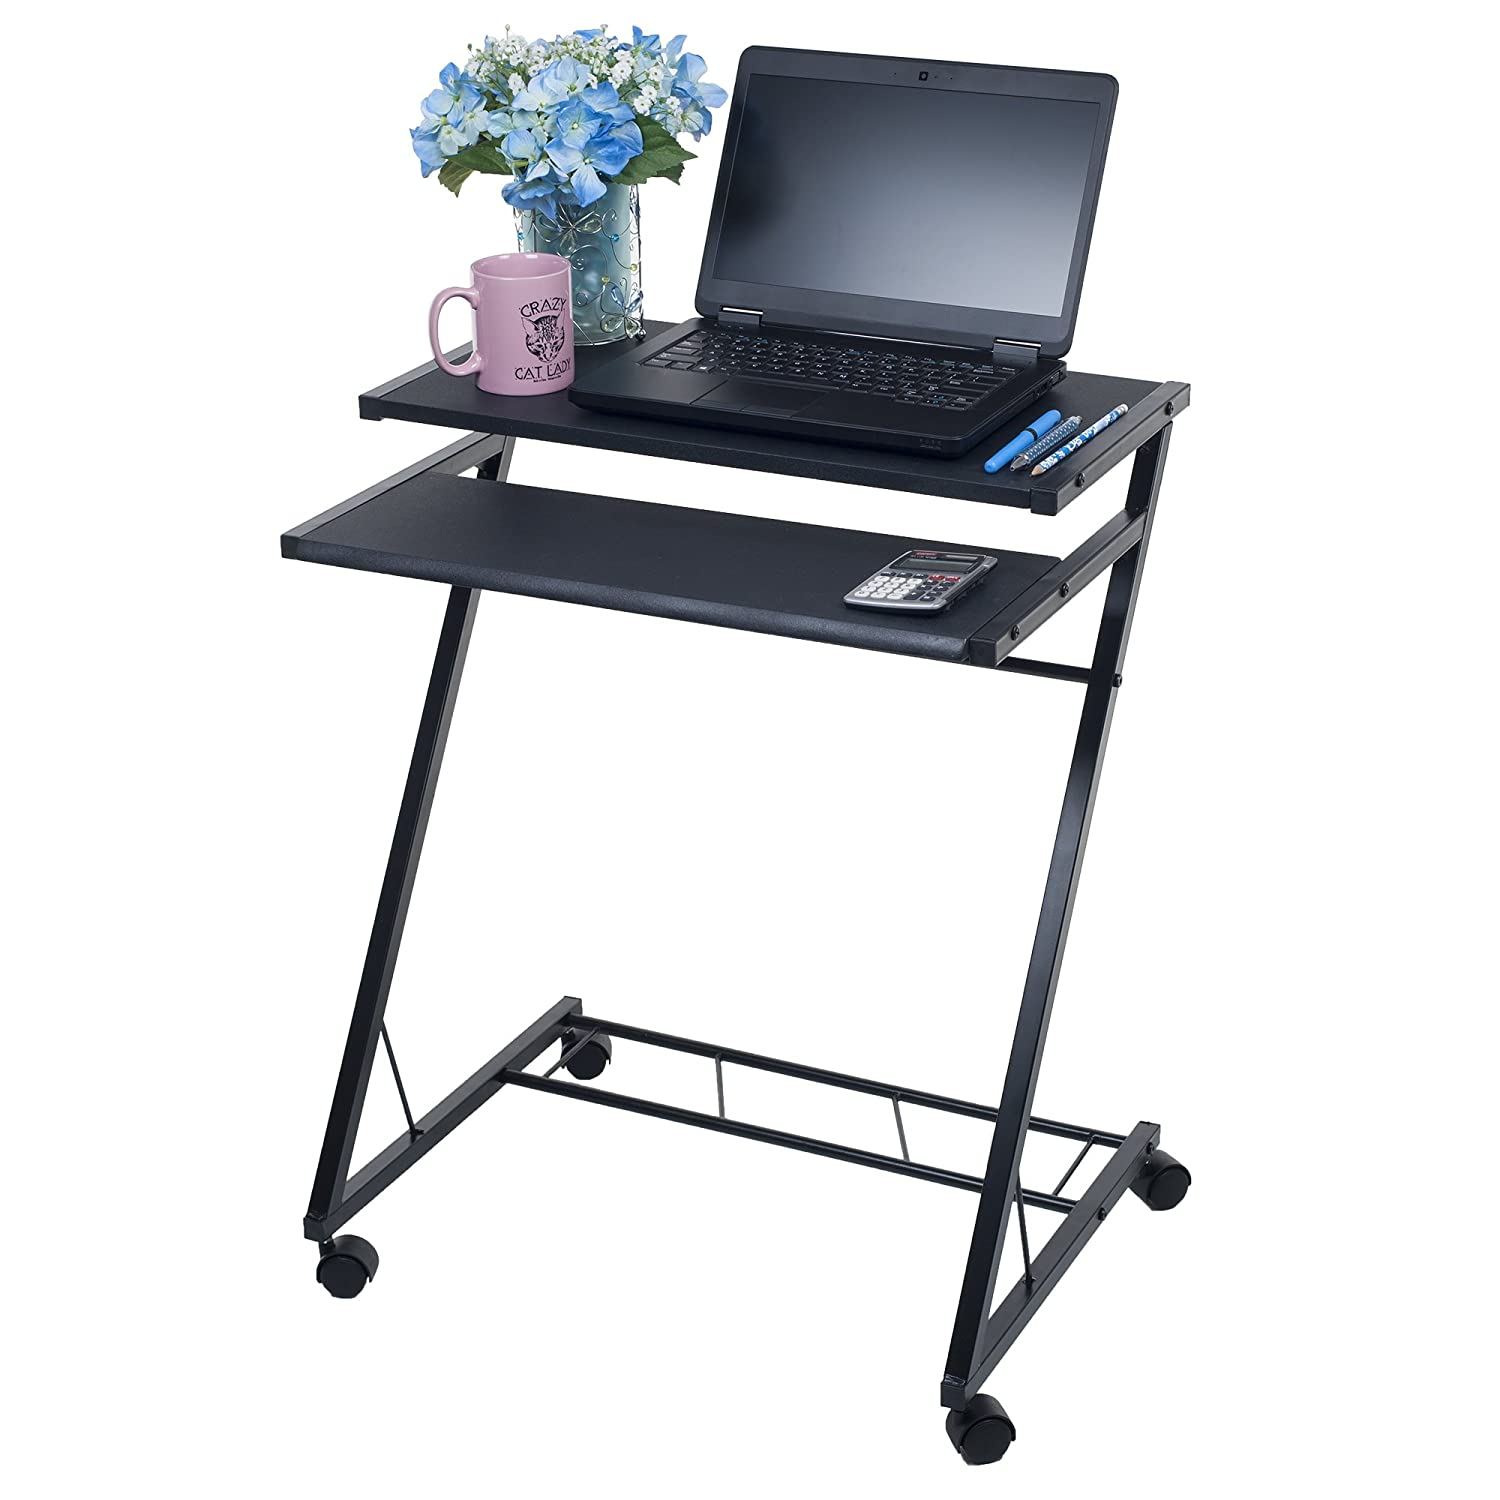 Lavish Home Mobile Rolling Cart Compact Computer Desk 80-CT10080